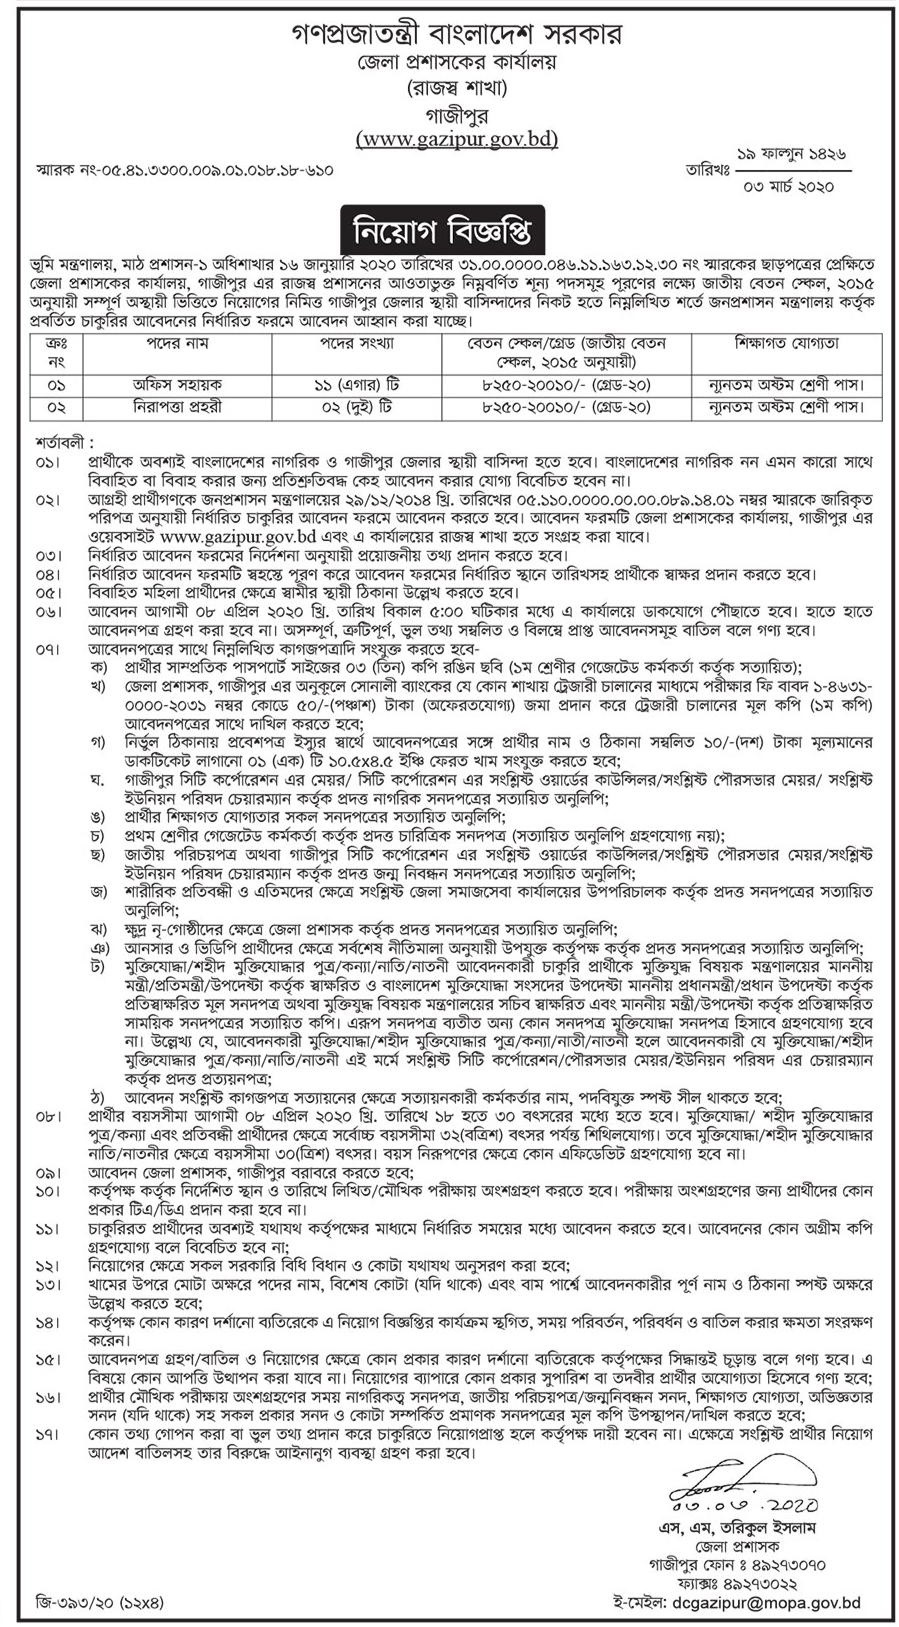 Gazipur Deputy Commissioner's Office Job Circular 2020